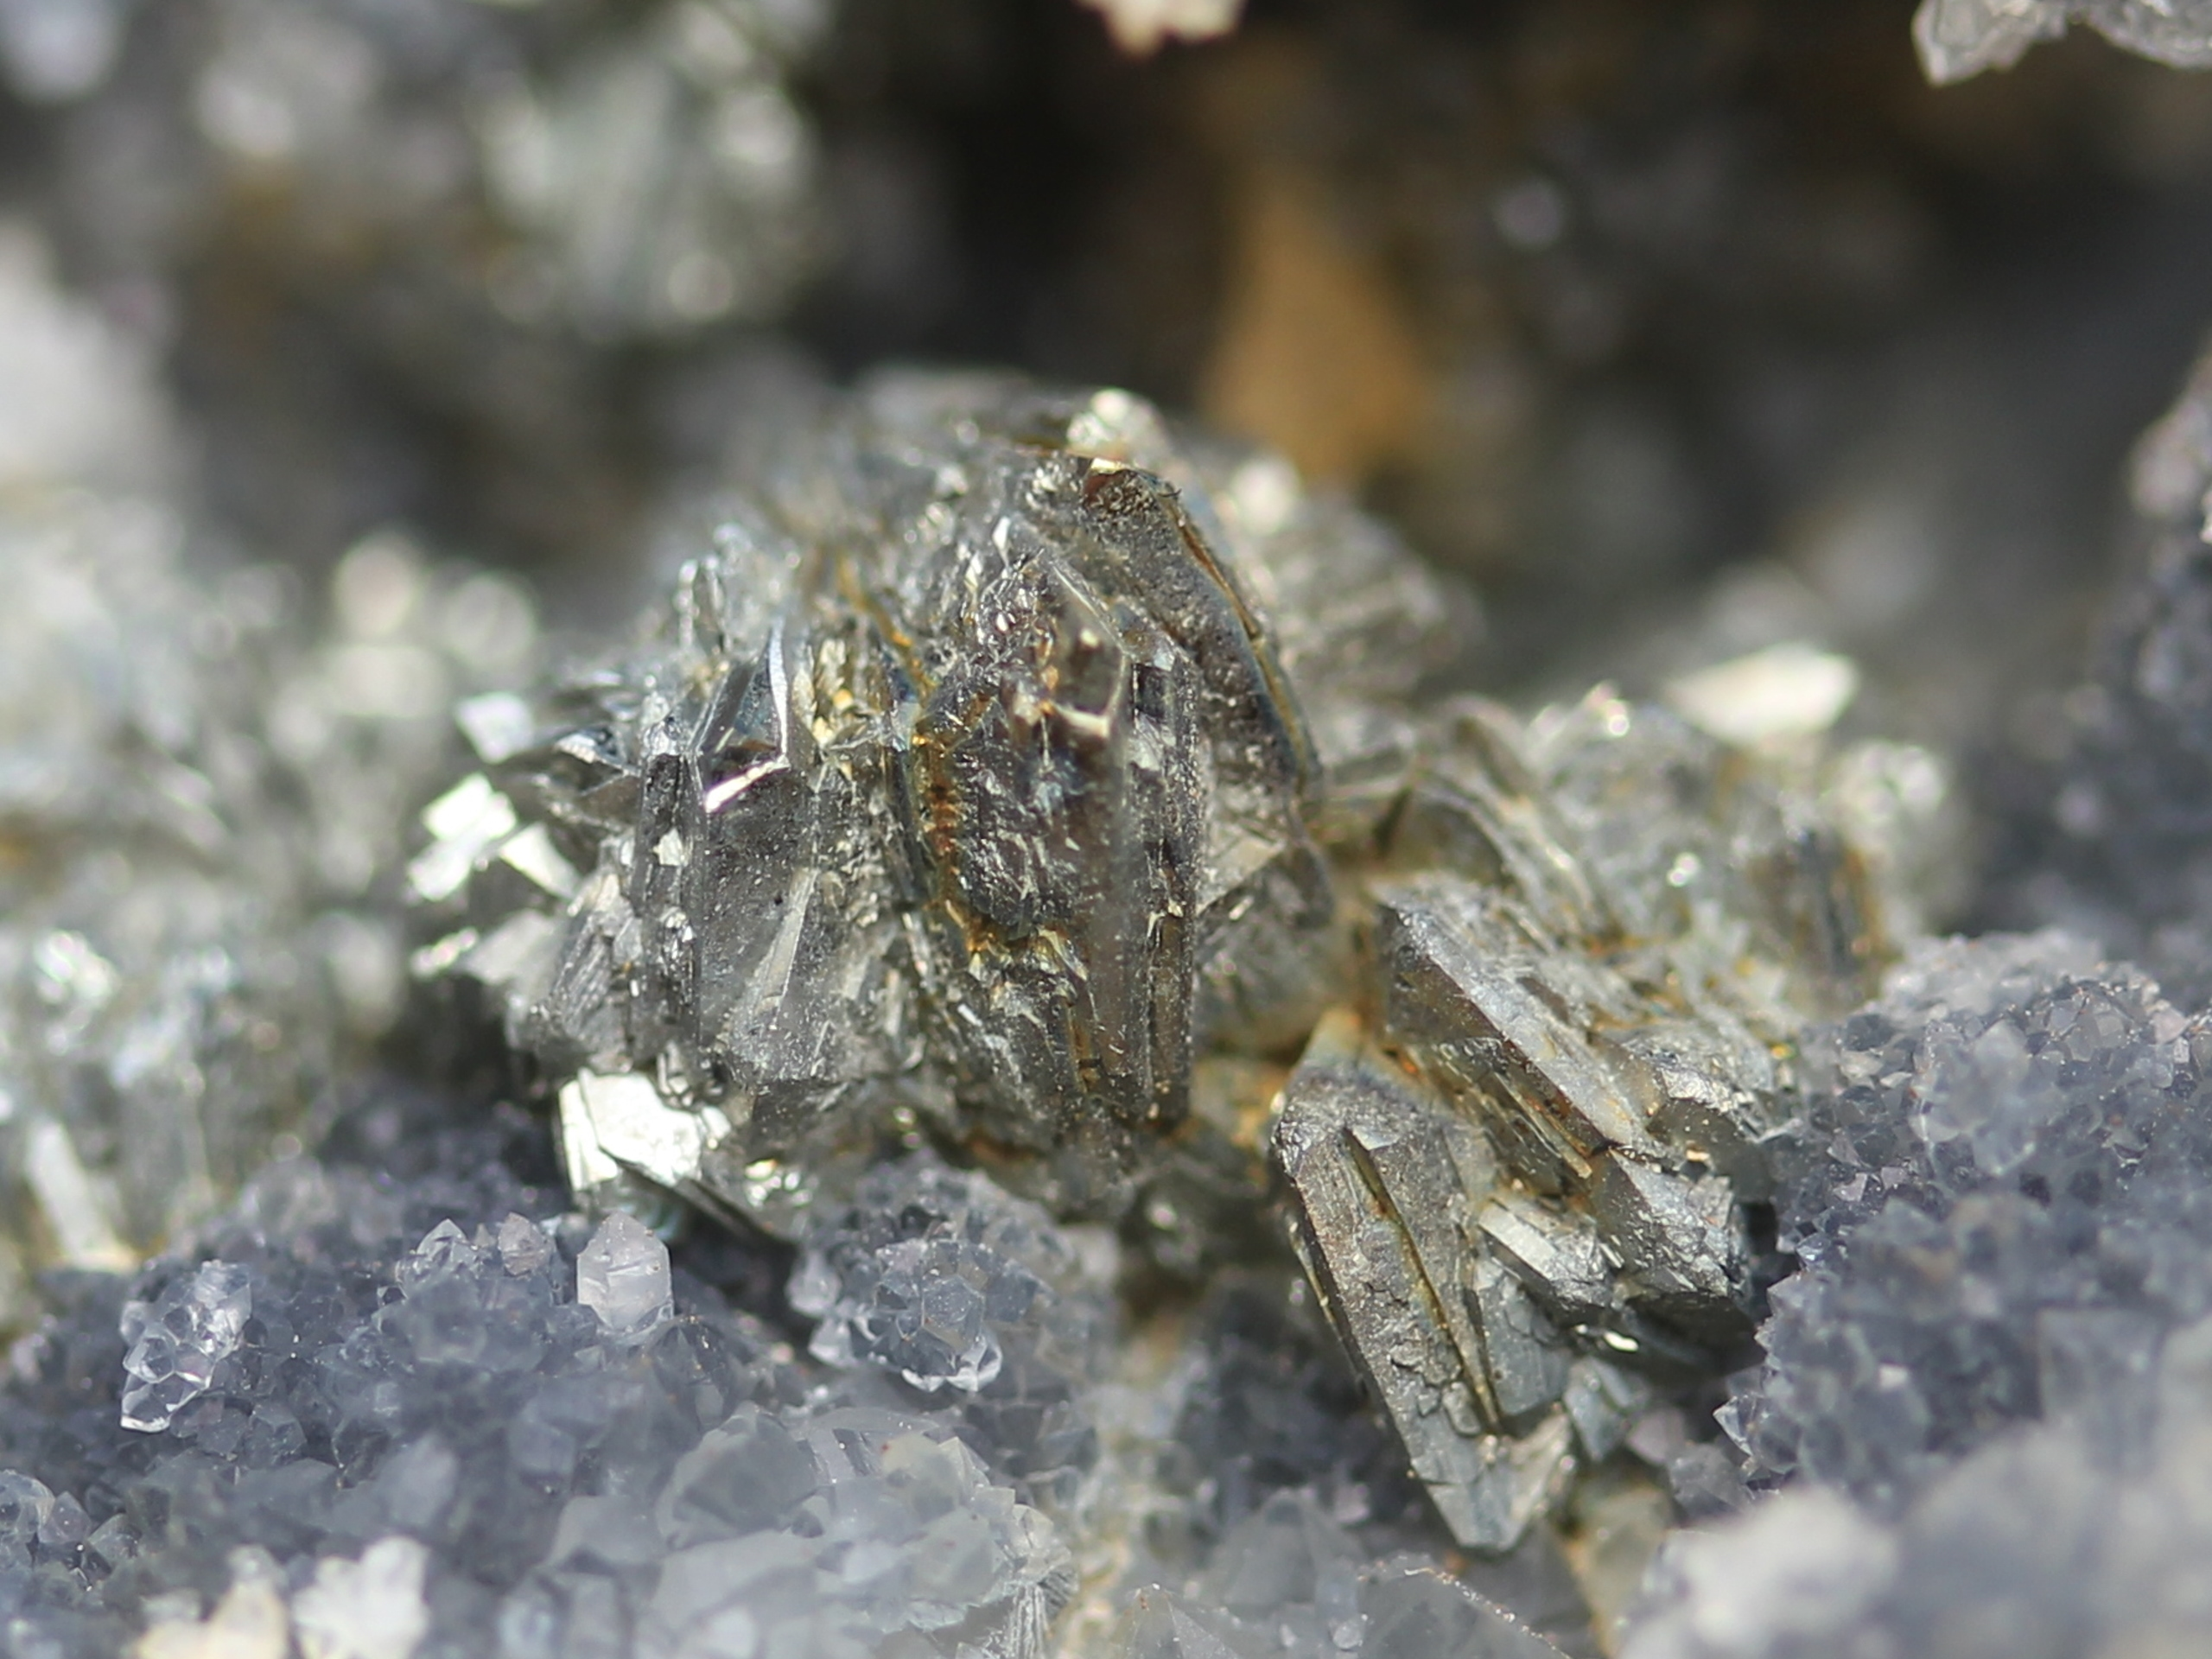 Small stibnite clusters (half spheres)